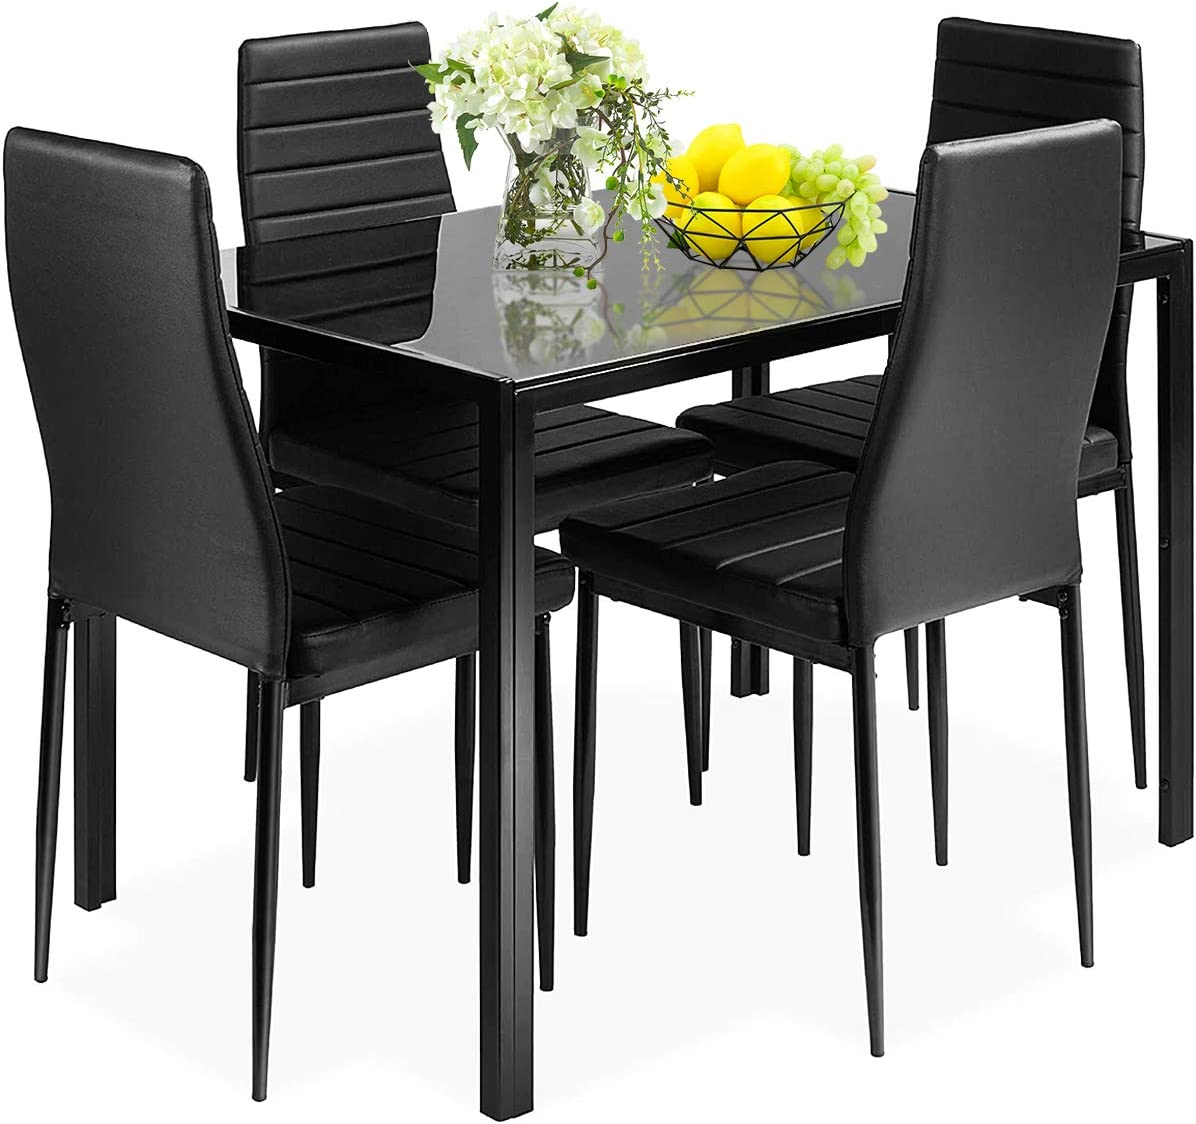 Amazon Com Giantex 5 Piece Kitchen Dining Table Set With Glass Table Top Leather Padded 4 Chairs And Metal Frame Table For Breakfast Dining Room Kitchen Dinette Black Table Chair Sets